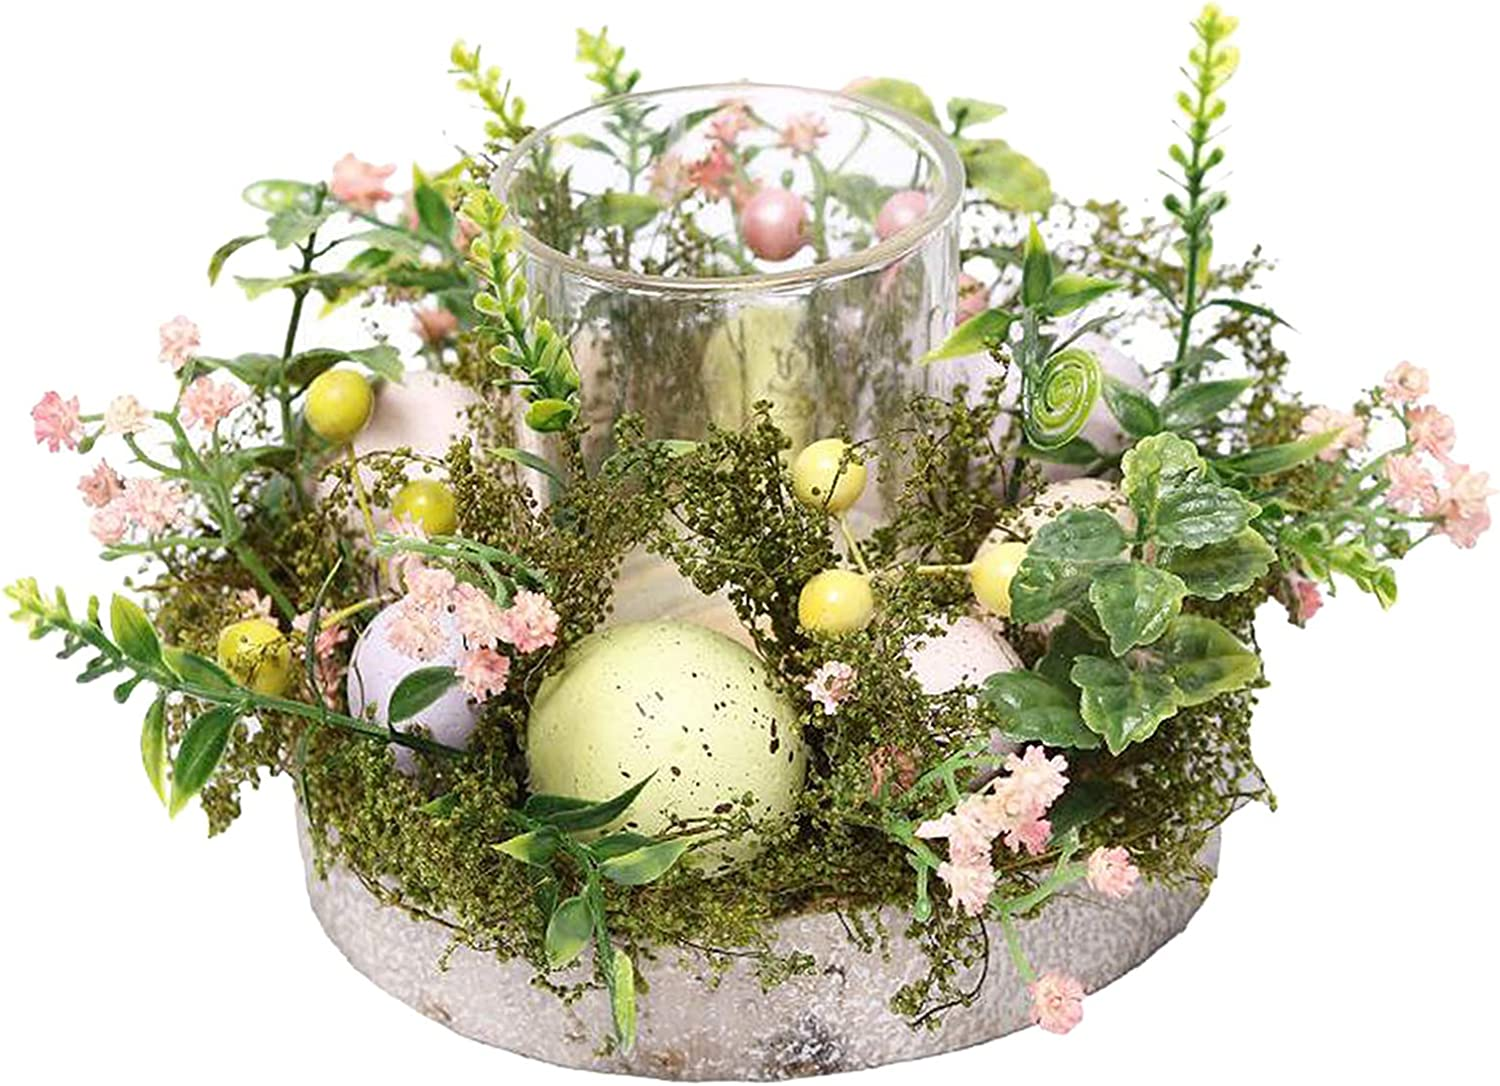 Decorative Glass Tealight Candle Holder Set Mini Candle Rings Wreaths Tabletop Centrepiece MagiDeal Easter Candle Holder Rings with Decorative Floral Eggs